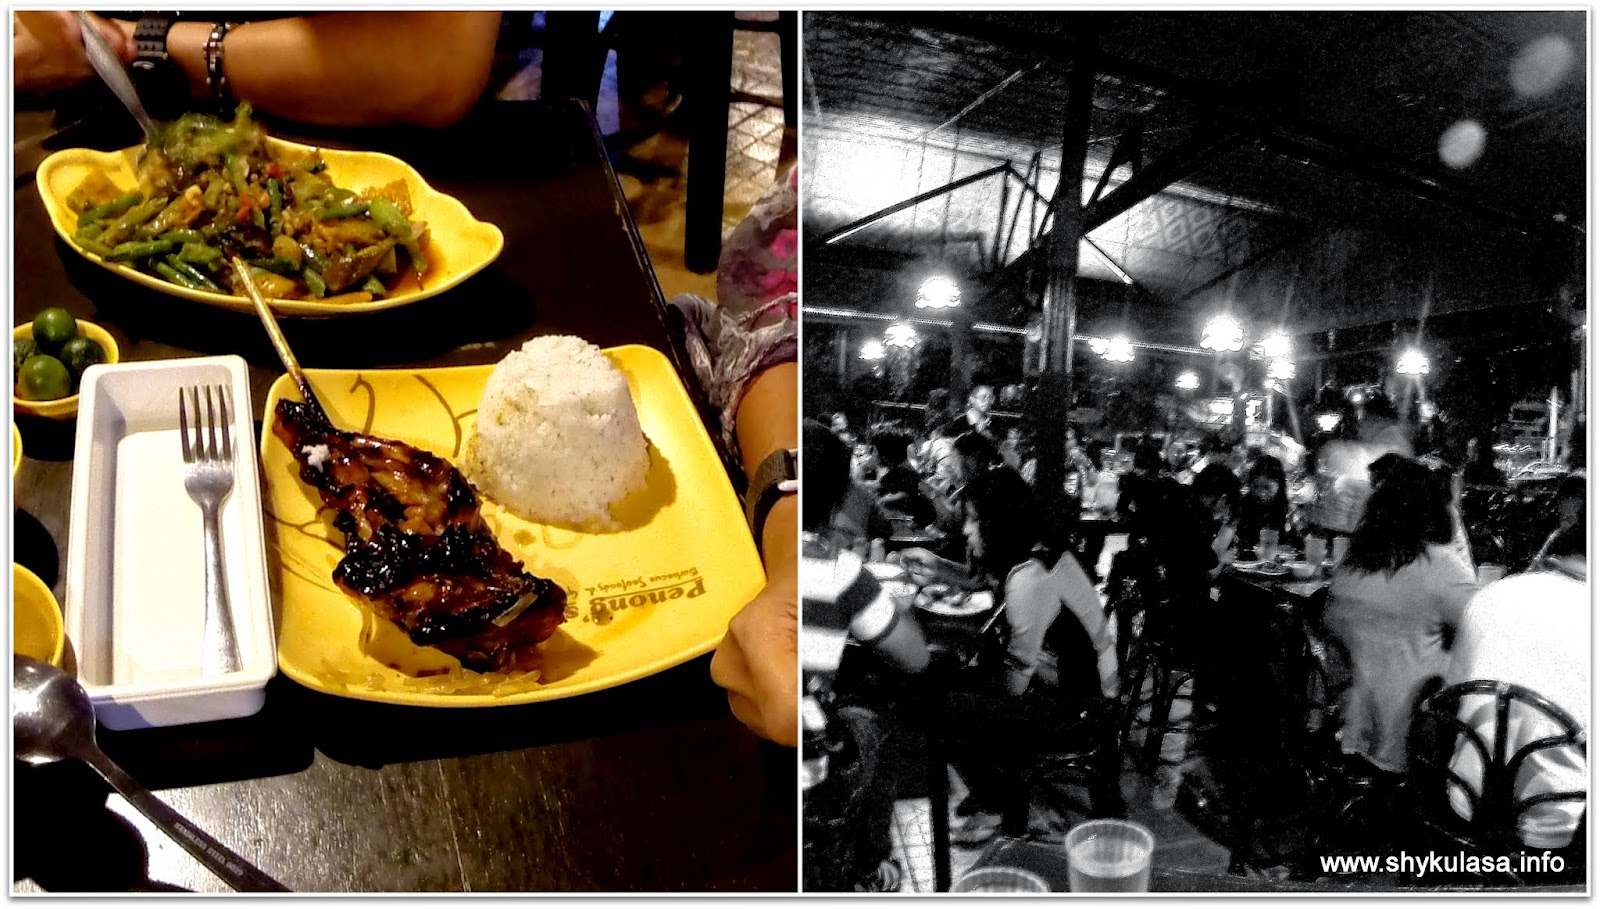 PENONG's Chicken Barbeque, Davao City